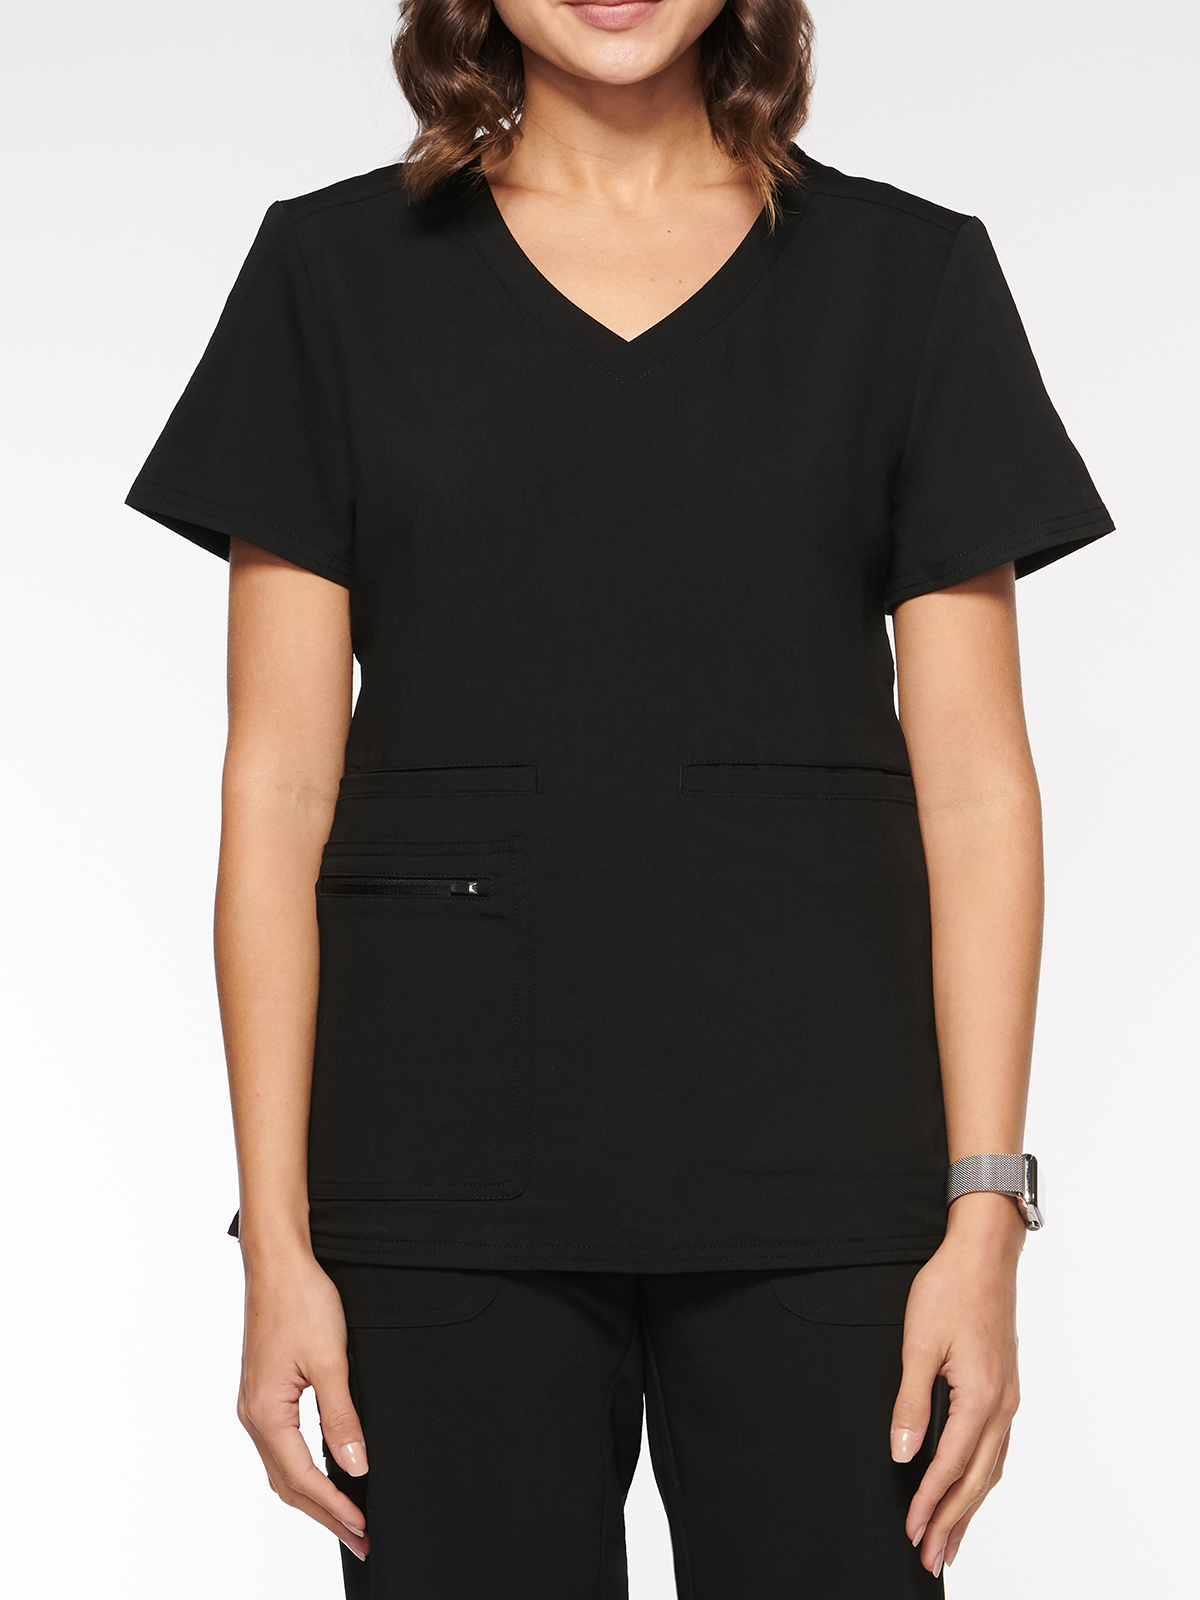 Womens Top Rounded V-Neck with 4 Pockets